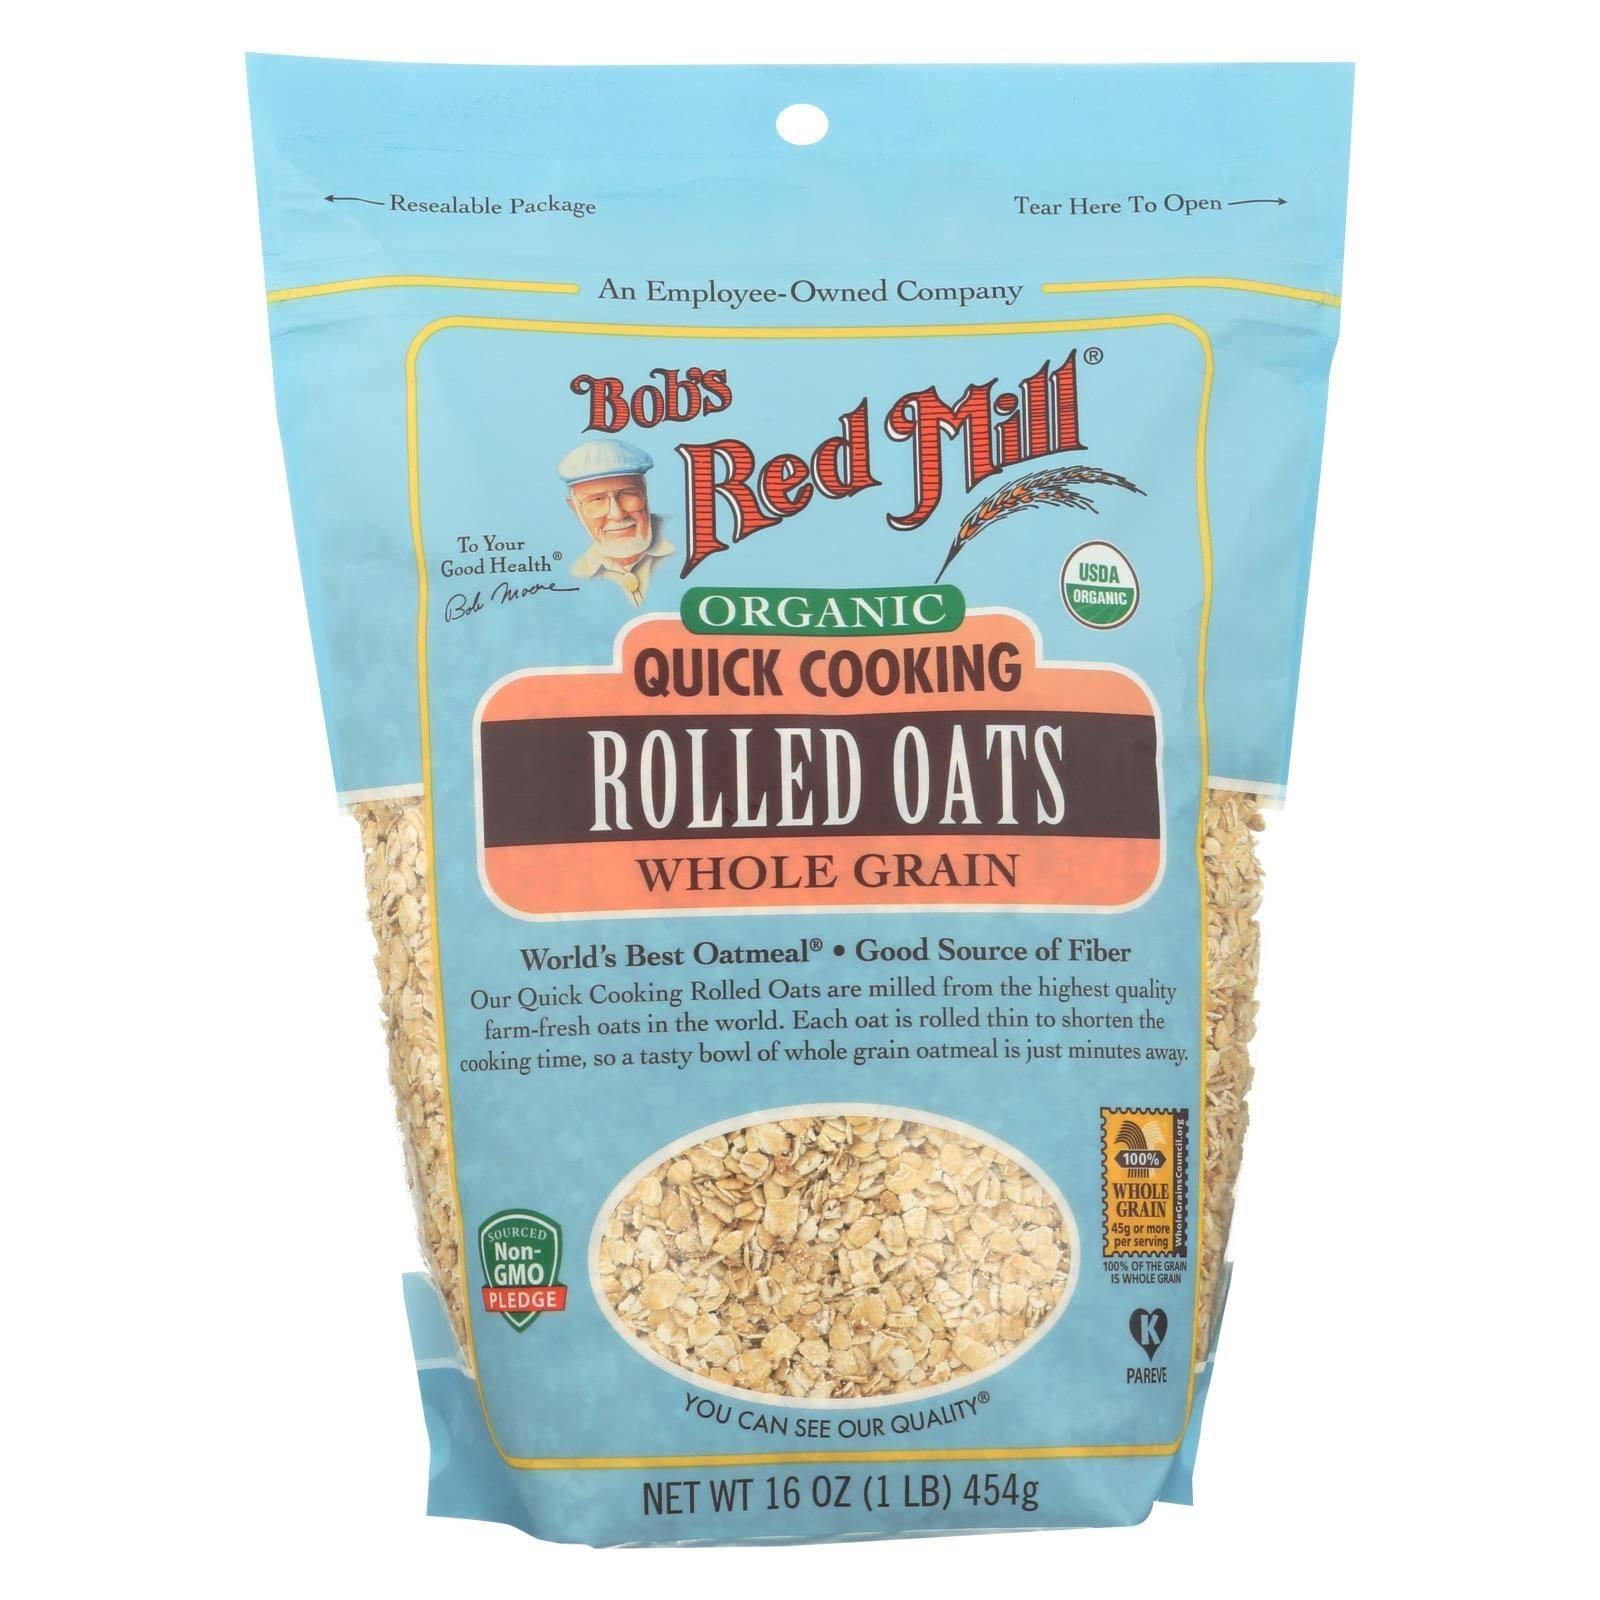 Bob's Red Mill Organic Quick Cooking Rolled Oats - 16 oz